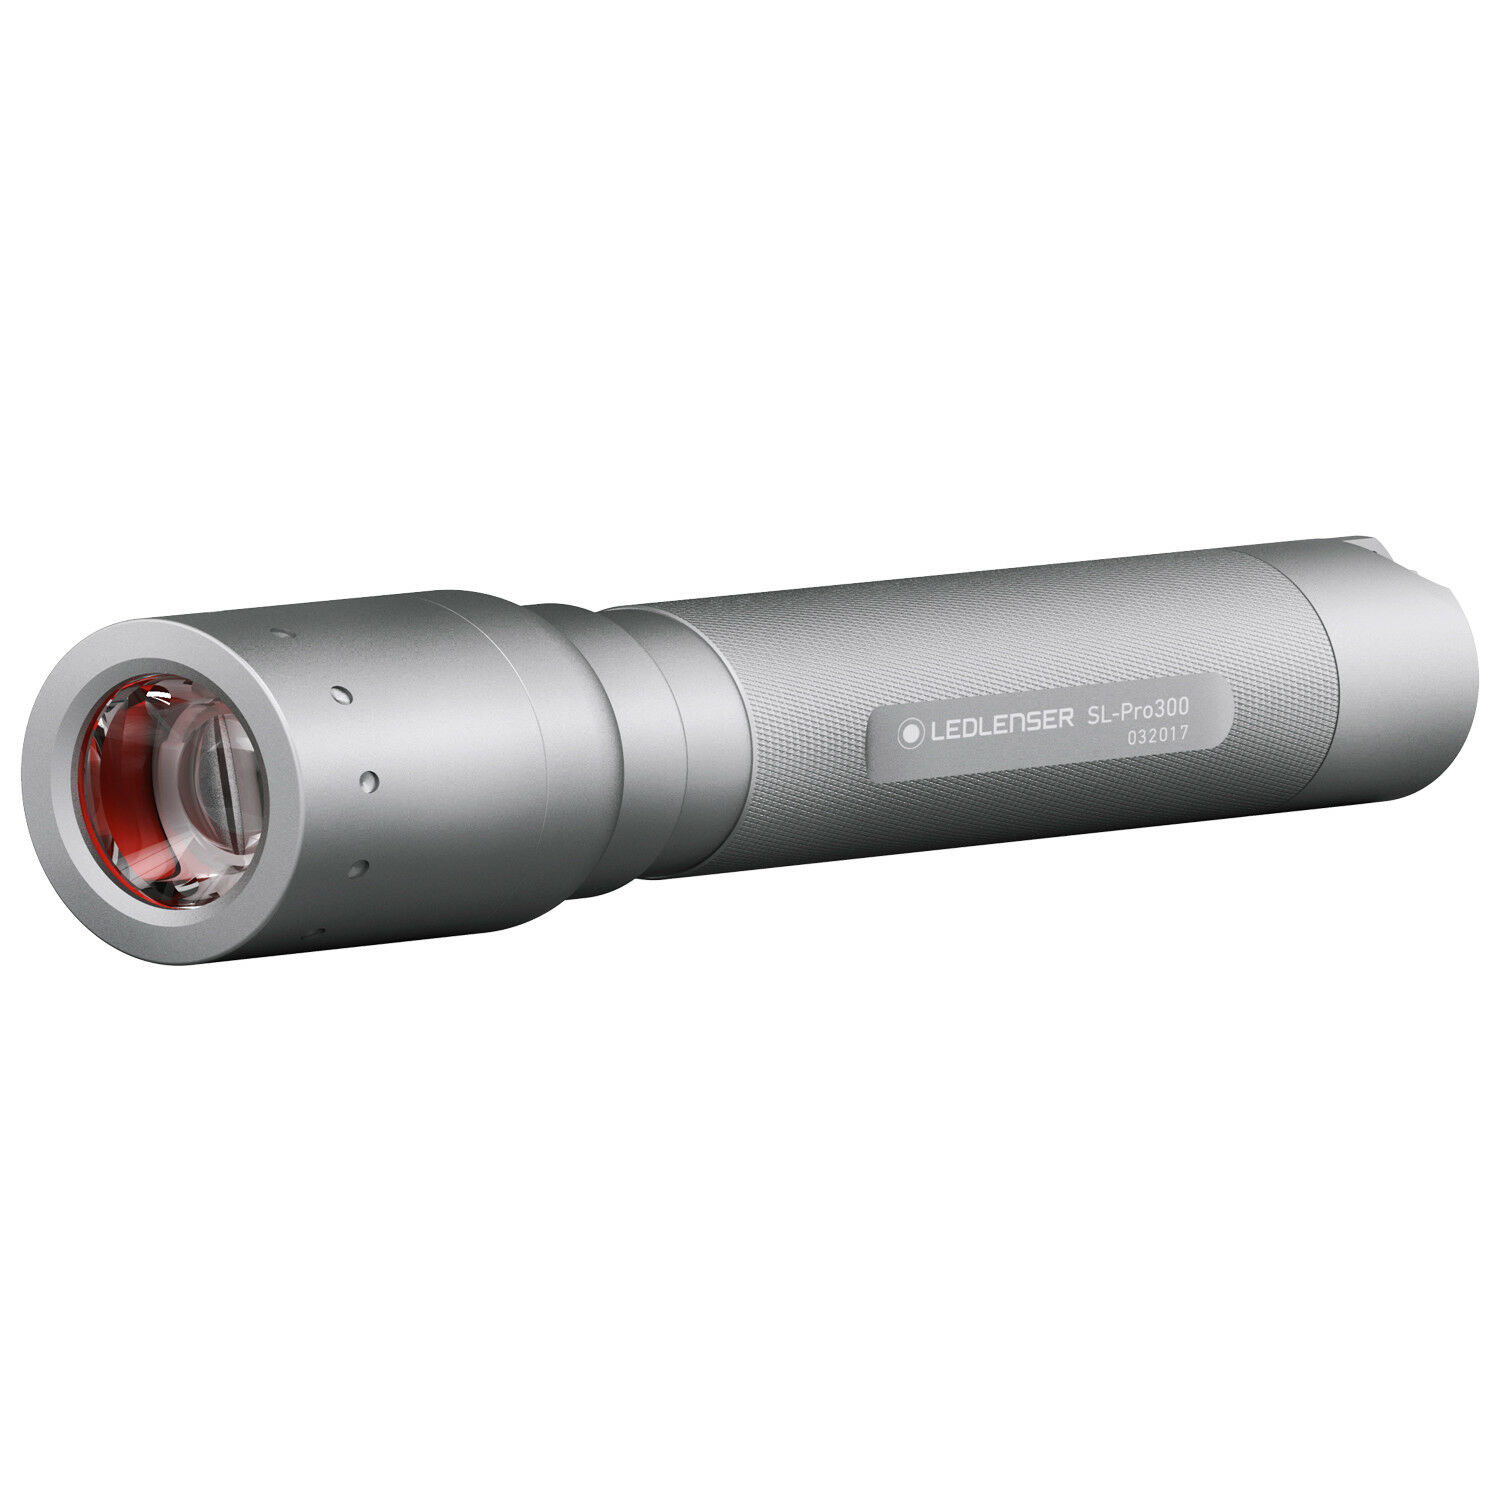 LED Lenser SL-Pro300 Flashlight Torch 300 Lumens